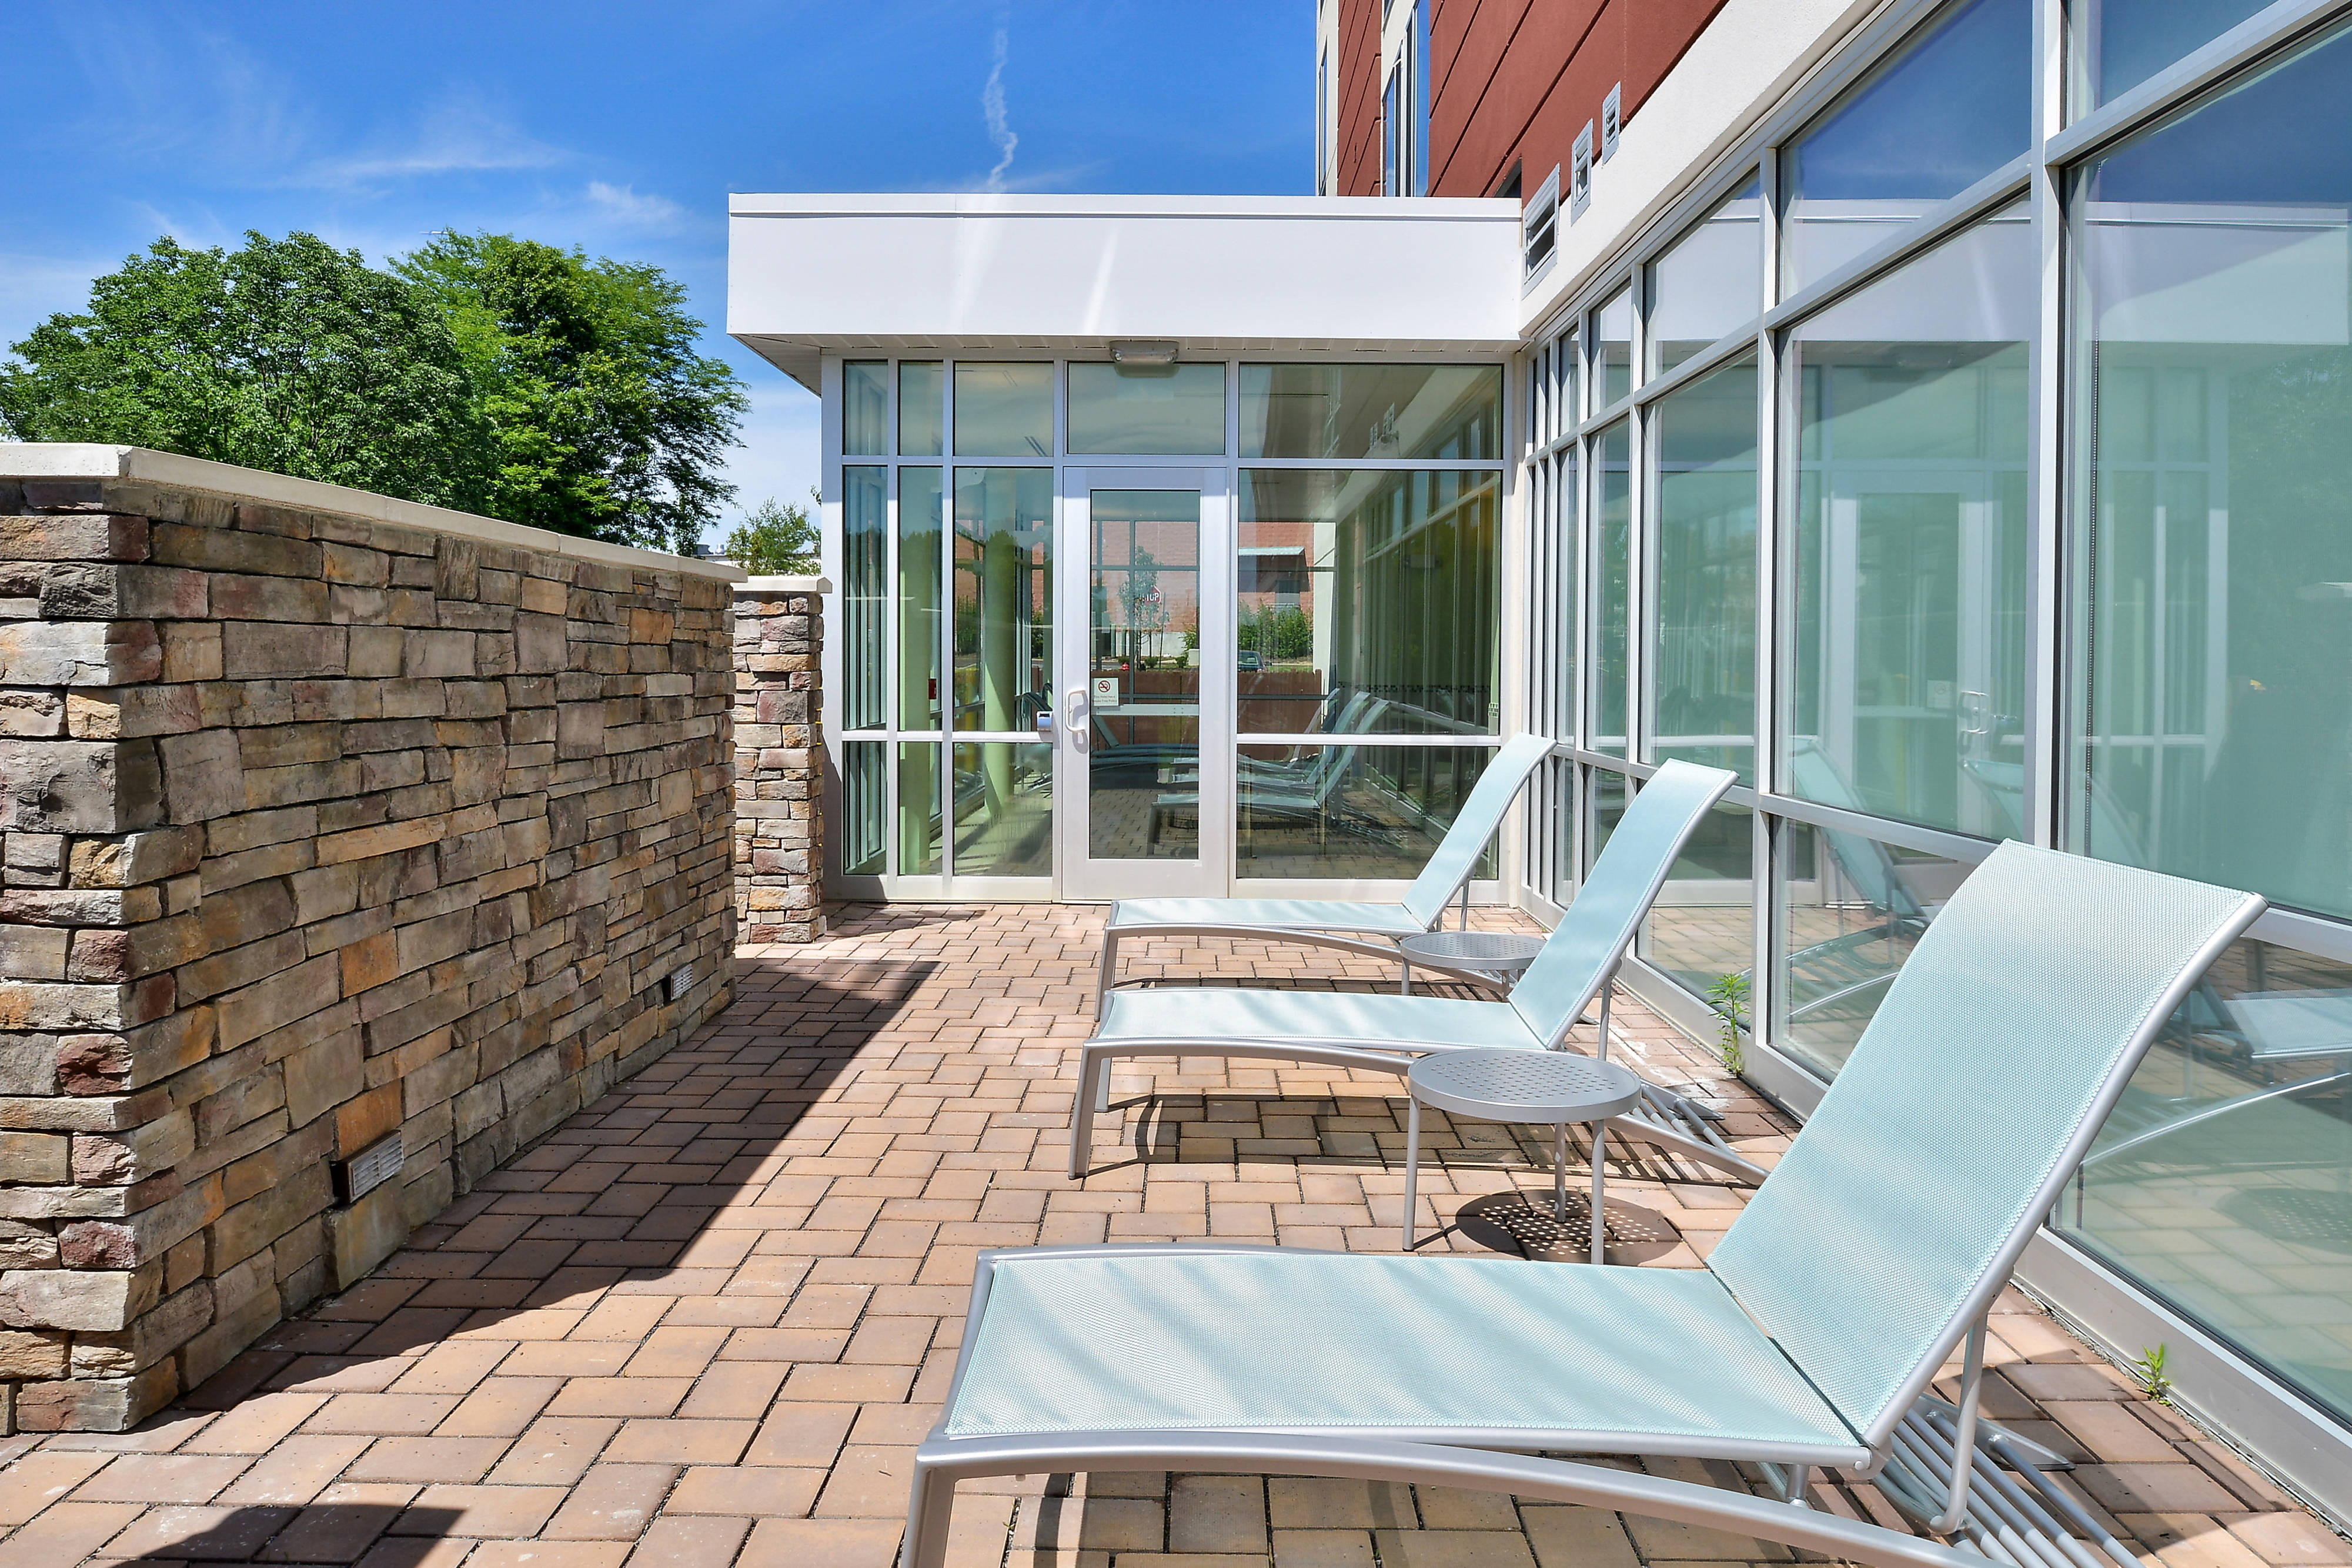 New Jersey Hotels Pool Patio